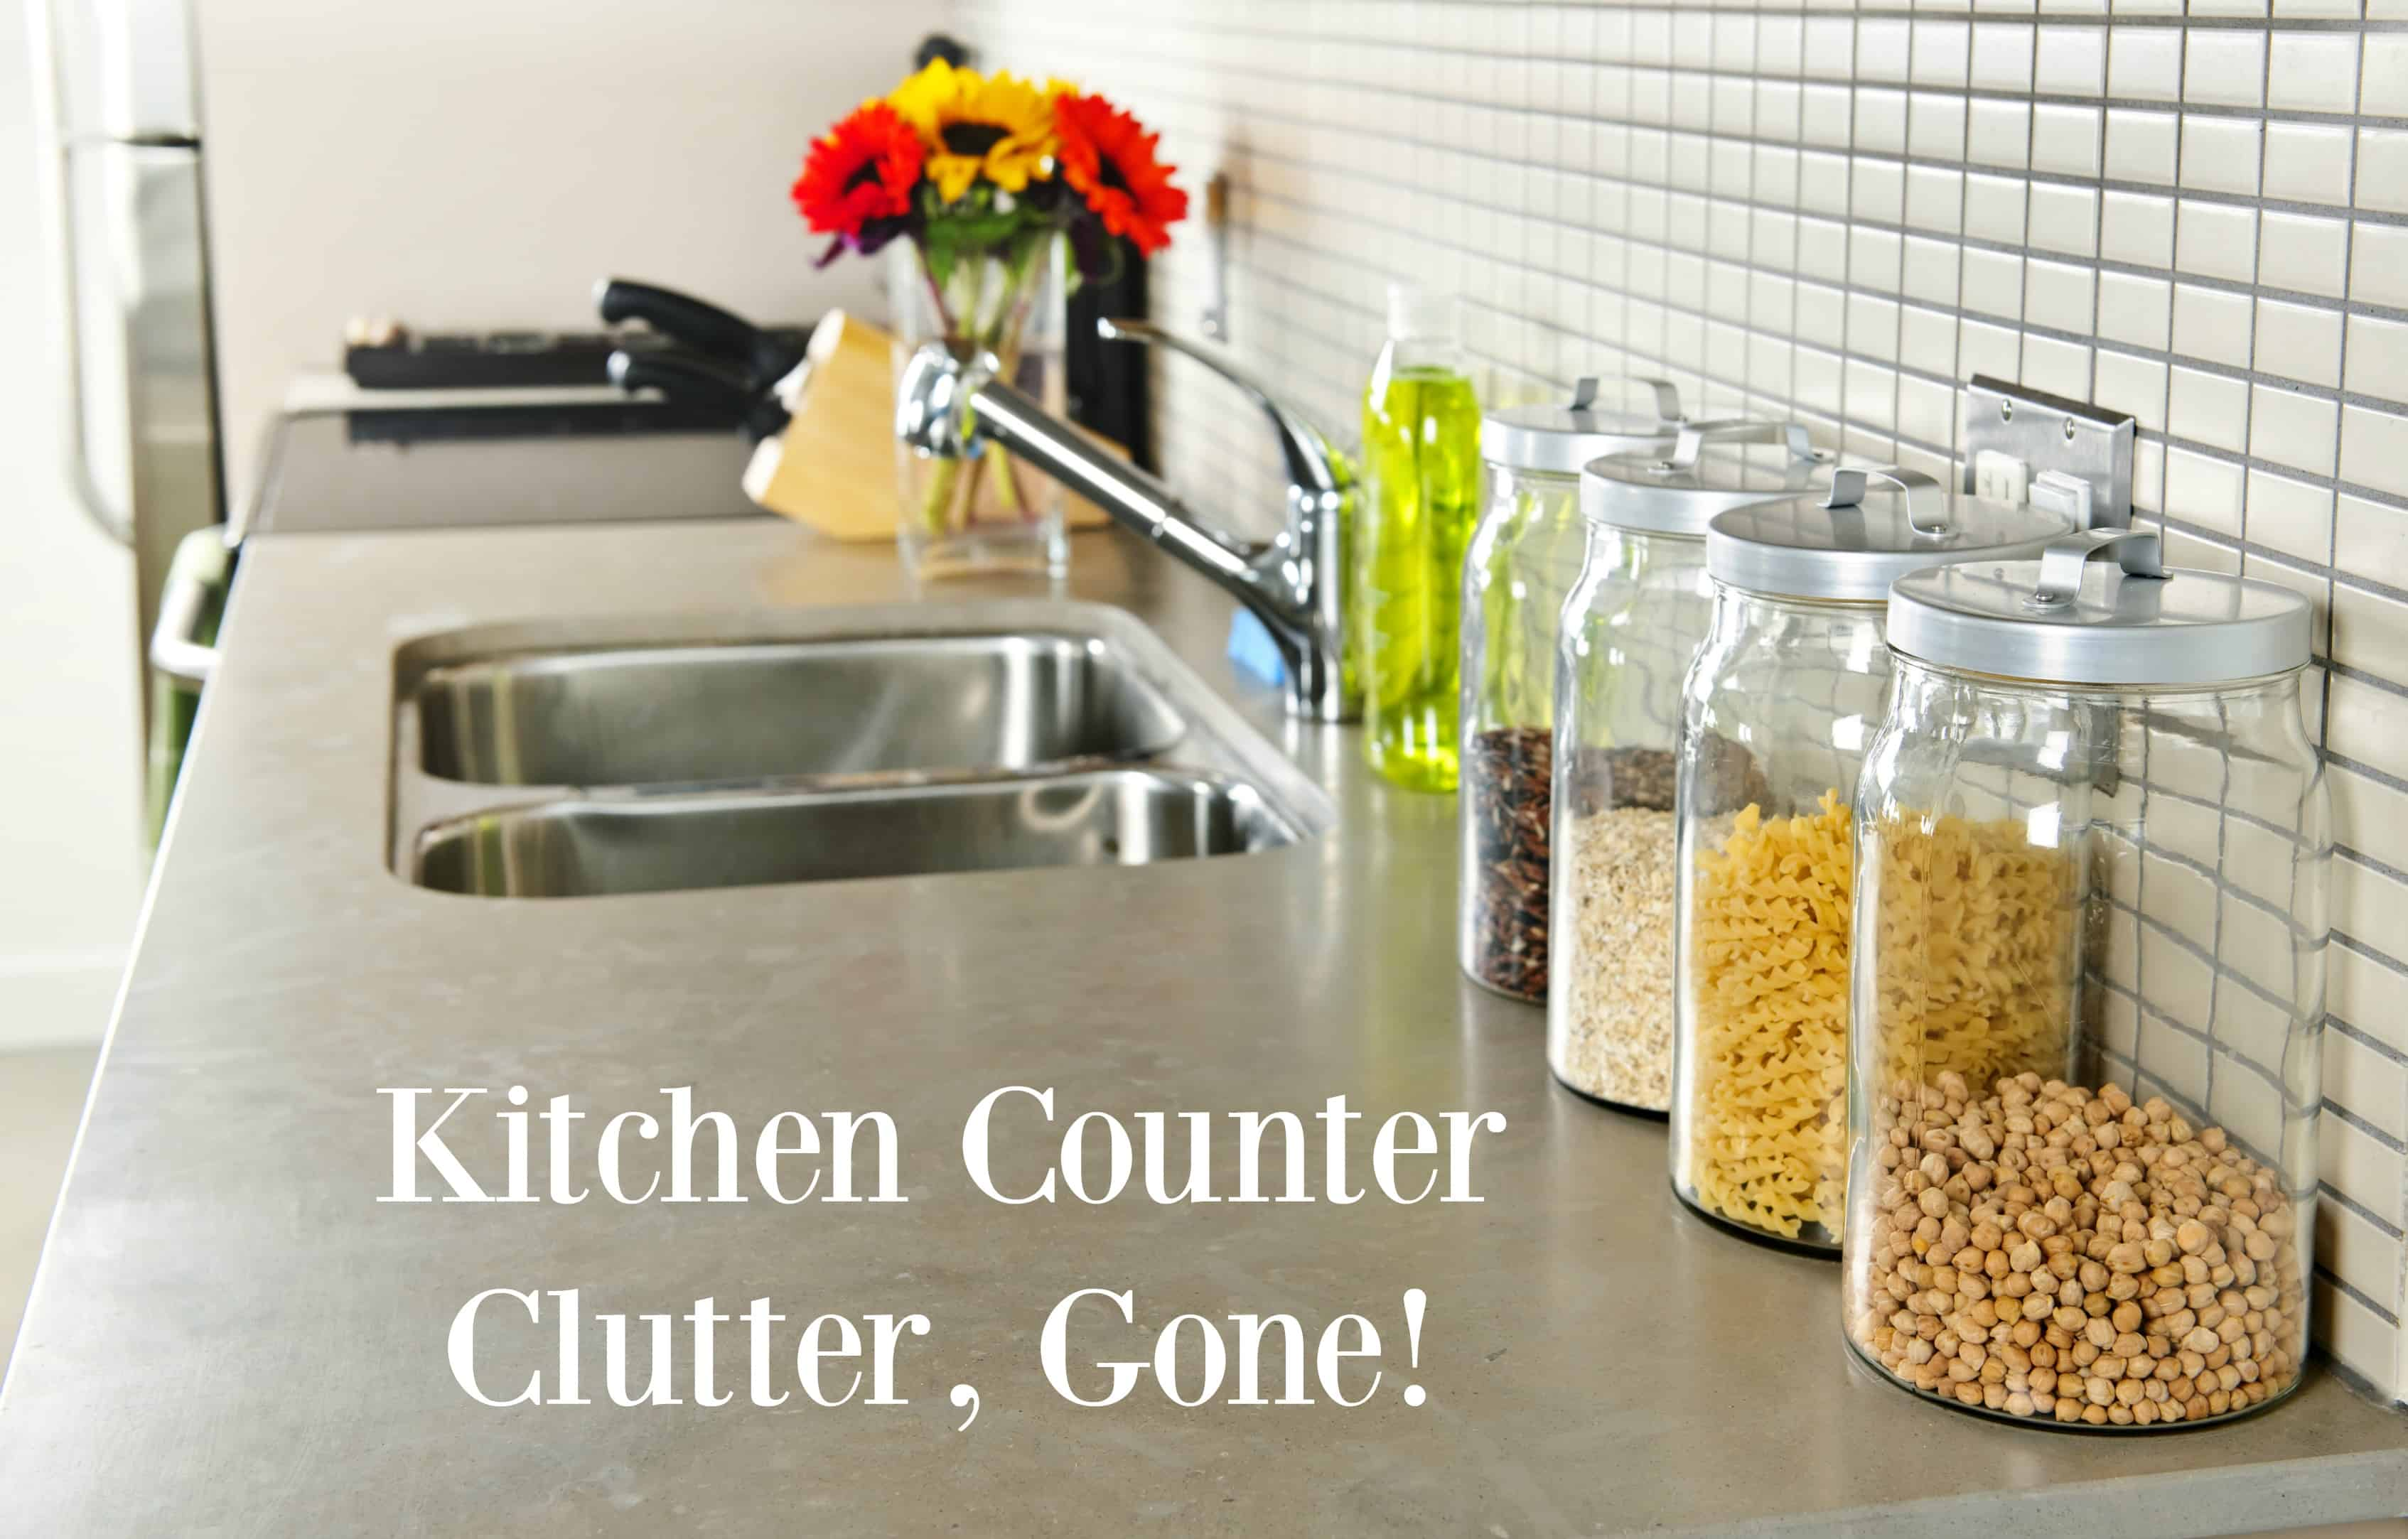 keeping kitchen counters clear the organized mom modern small kitchen interior with glass jars on natural stone countertop